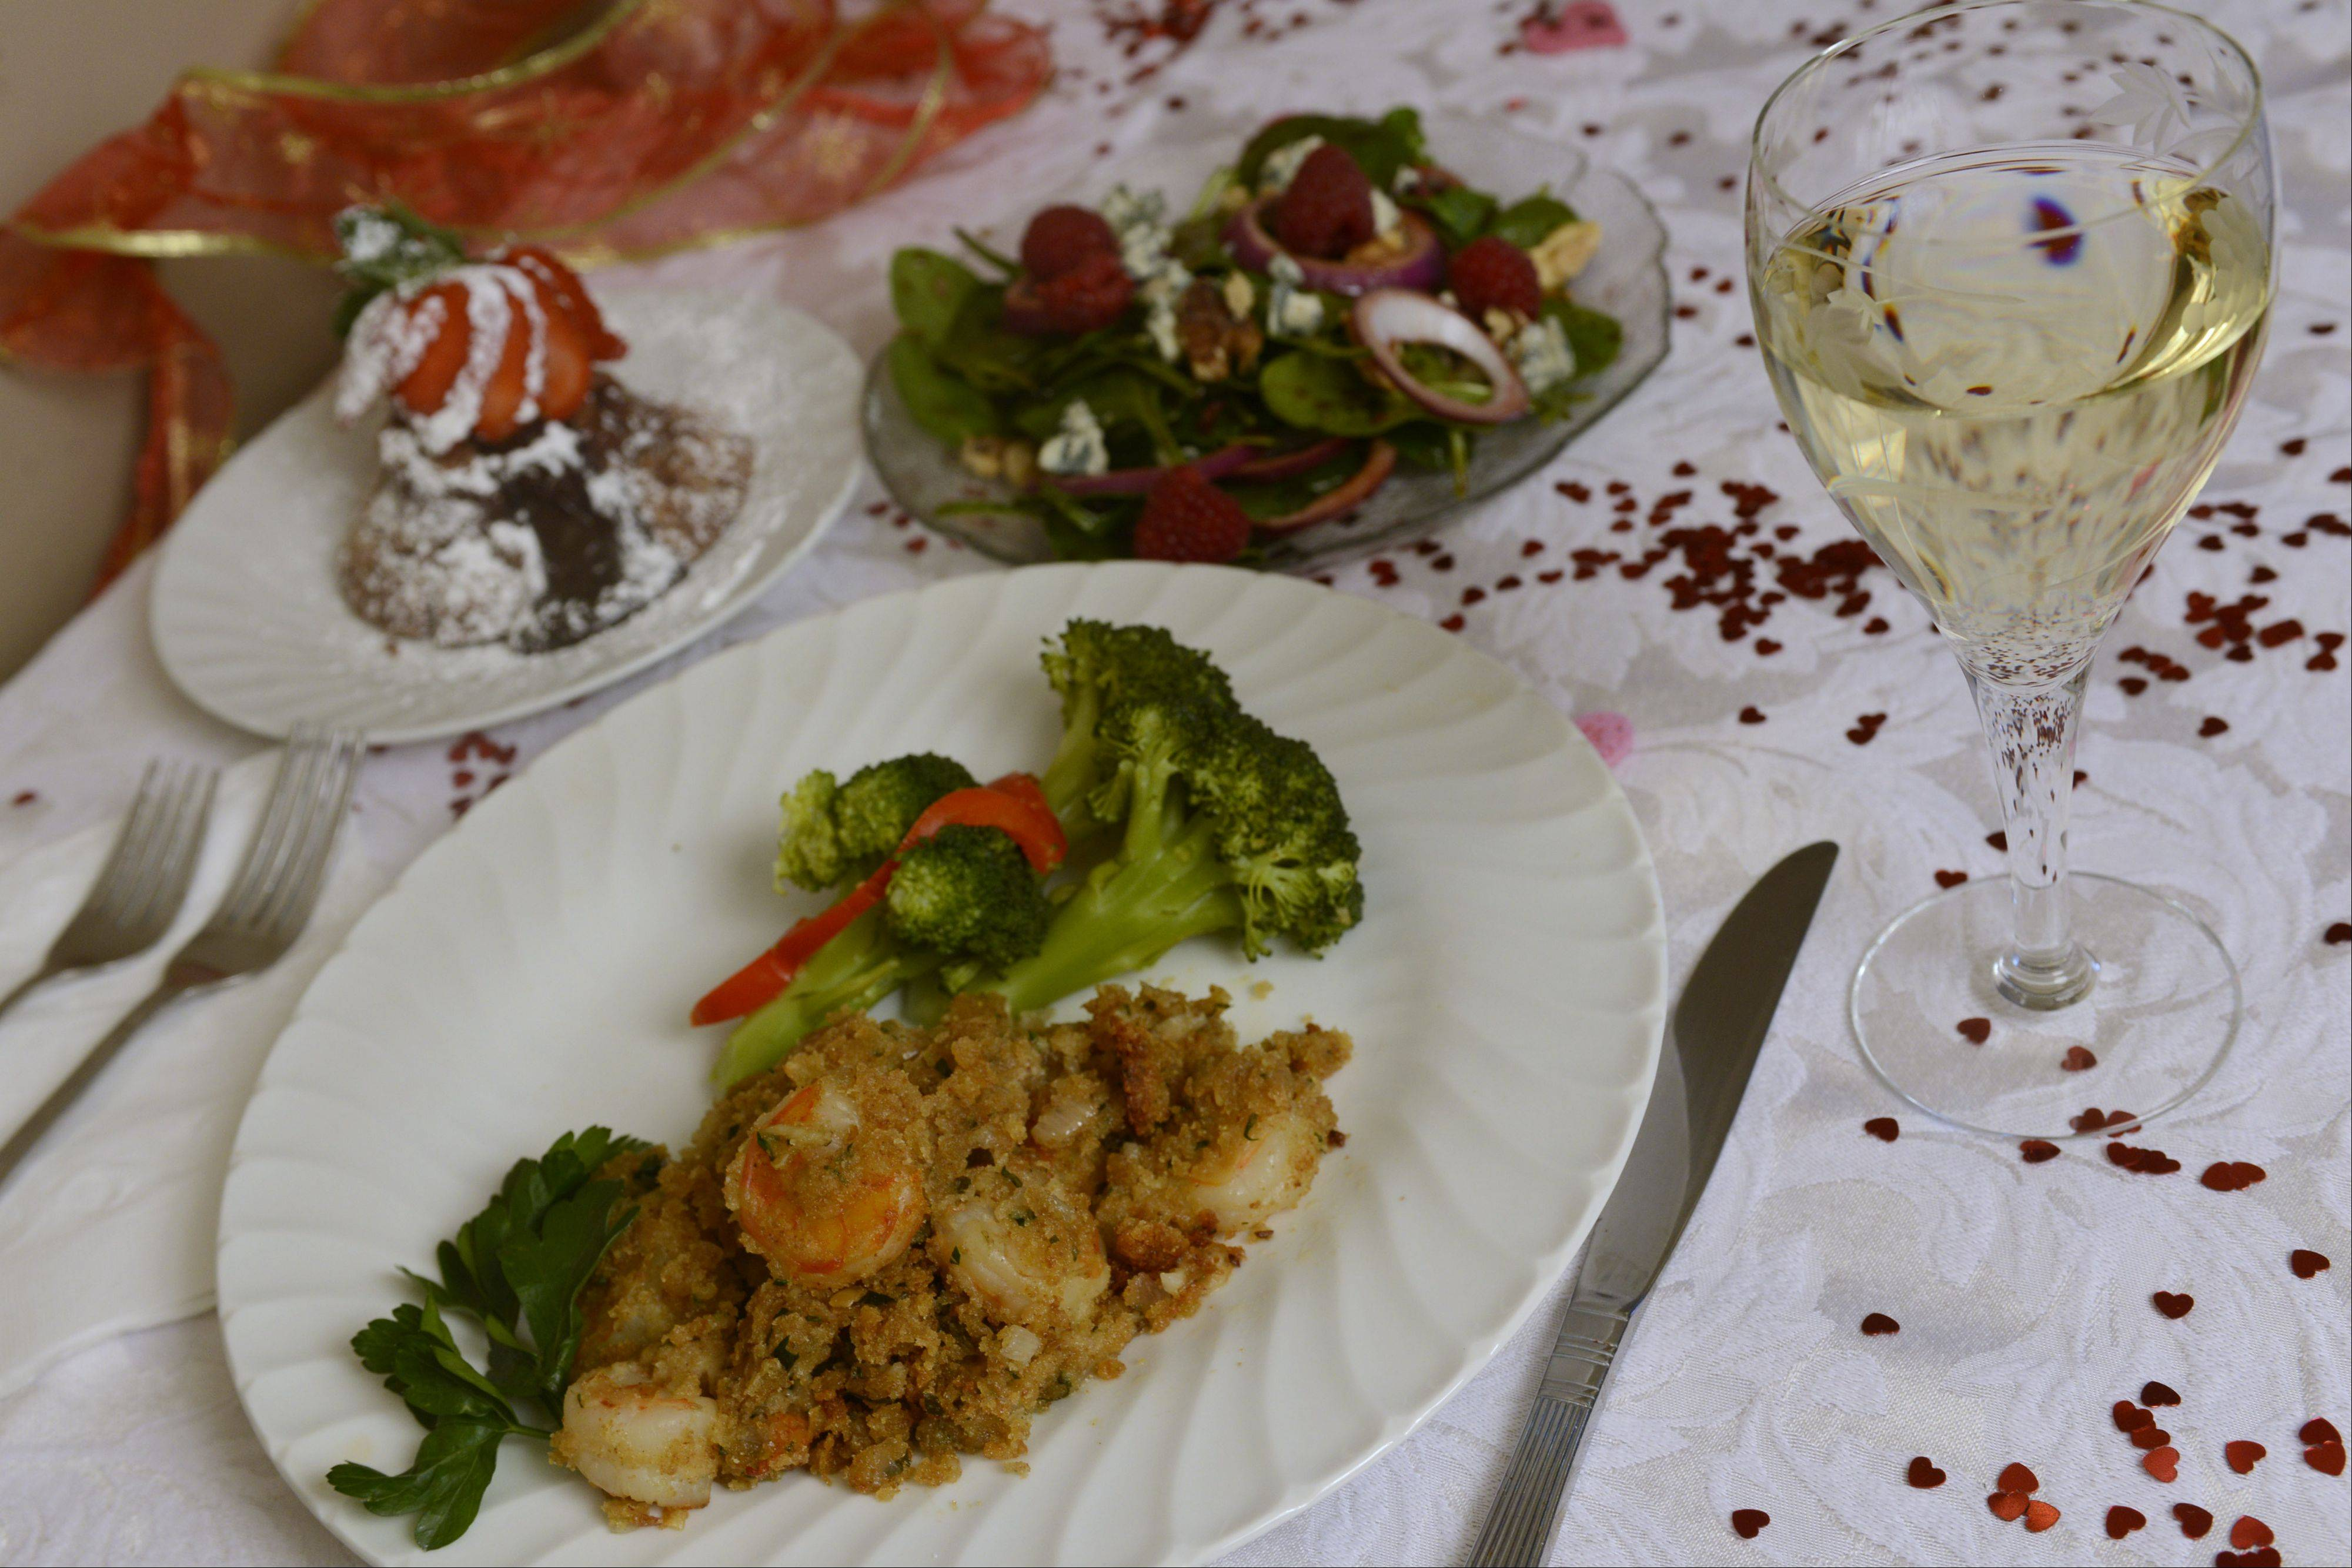 Shrimp de Jonghe is the centerpiece of a the Valentine's Day meal Leslie Abbey cooks up for her loved ones.